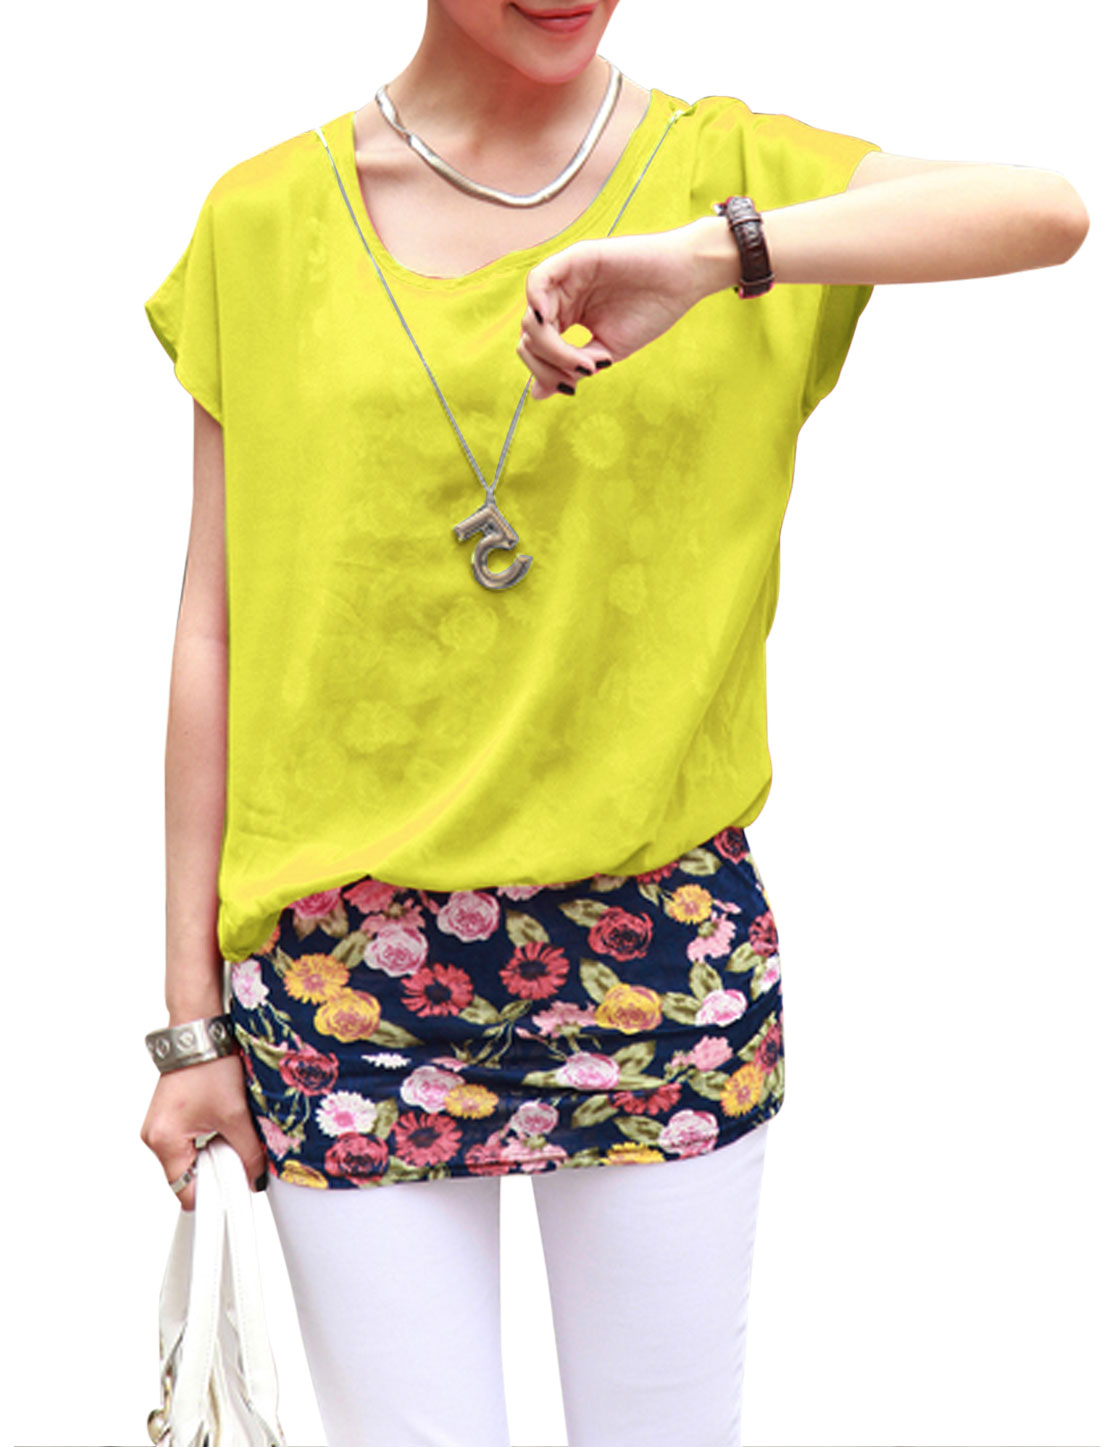 Lady Pullover Layered Shirts Floral Prints Tunic Top w Necklace Yellow S